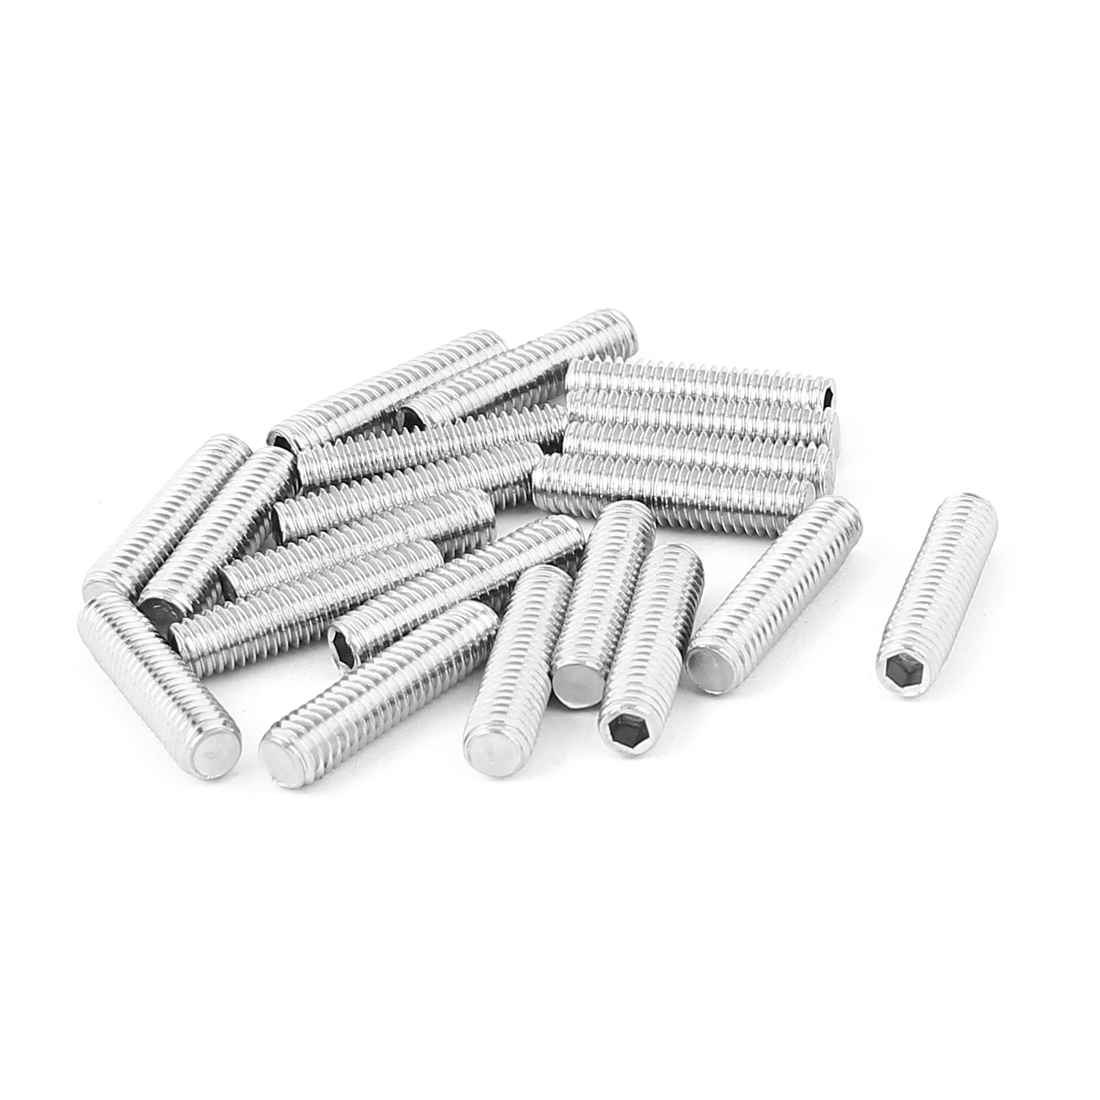 Bolt Base Stainless Steel M6 Flat Point Hex Socket Grub Screws 20pcs